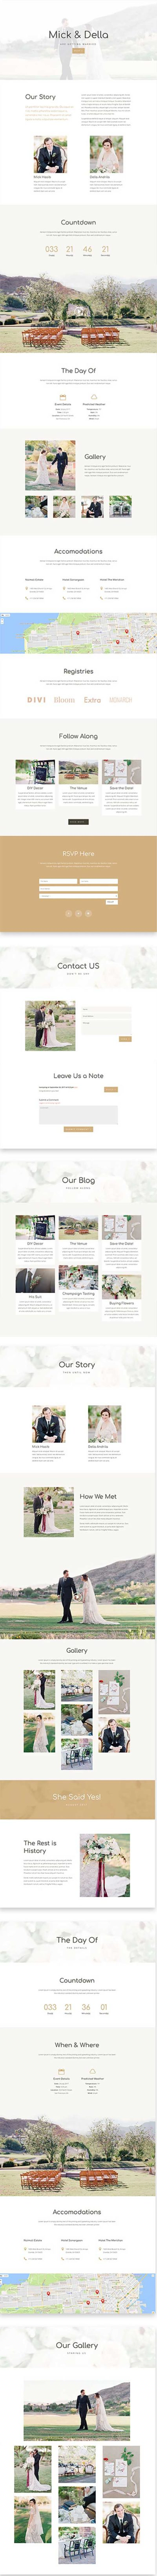 free divi layout for wedding website